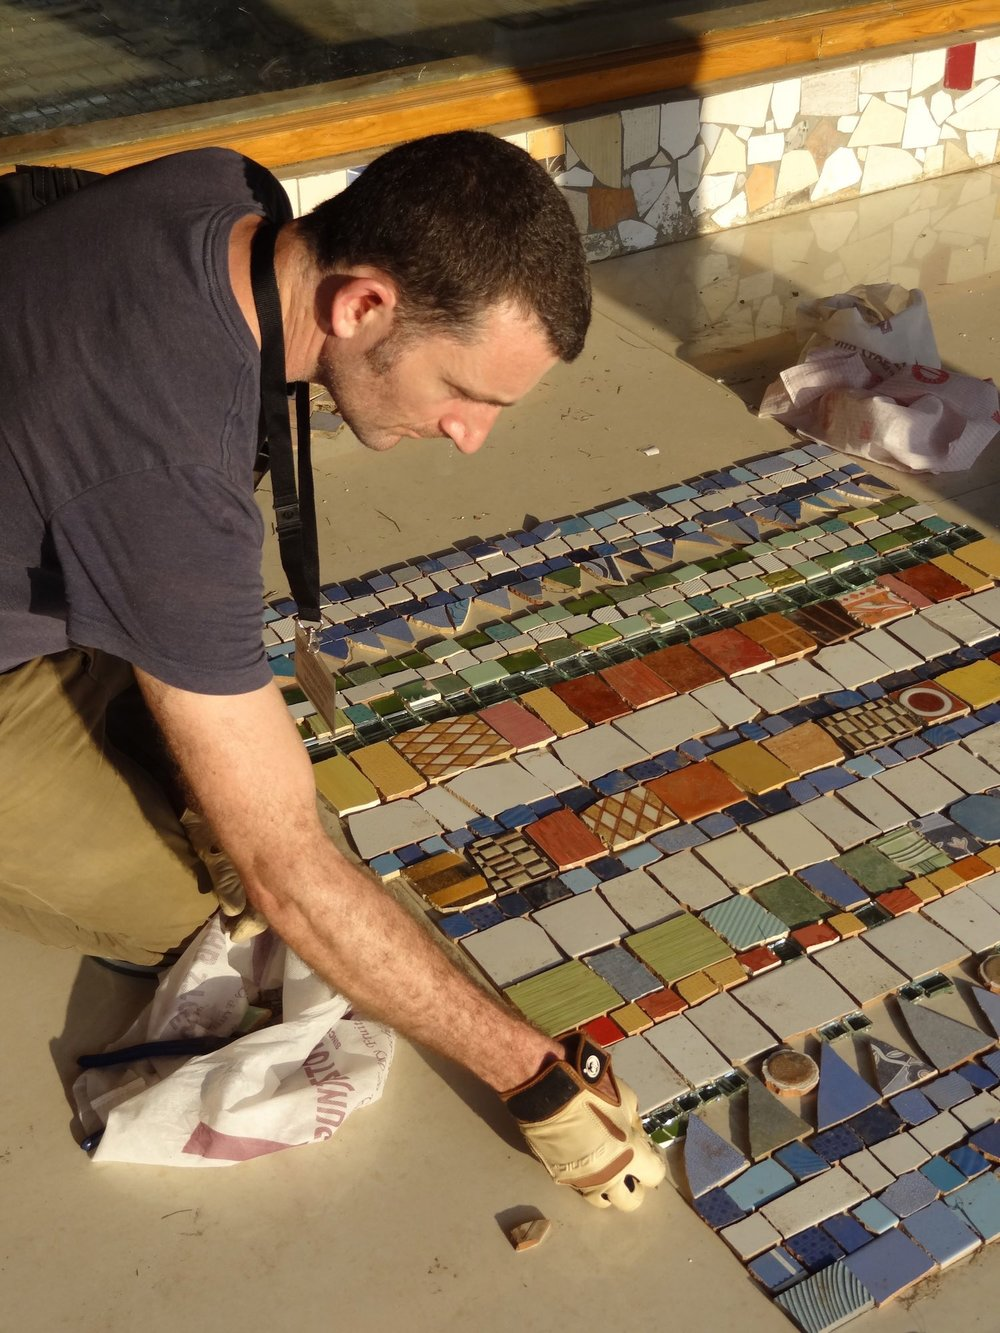 Mosaic preparation at the Rock Garden in India